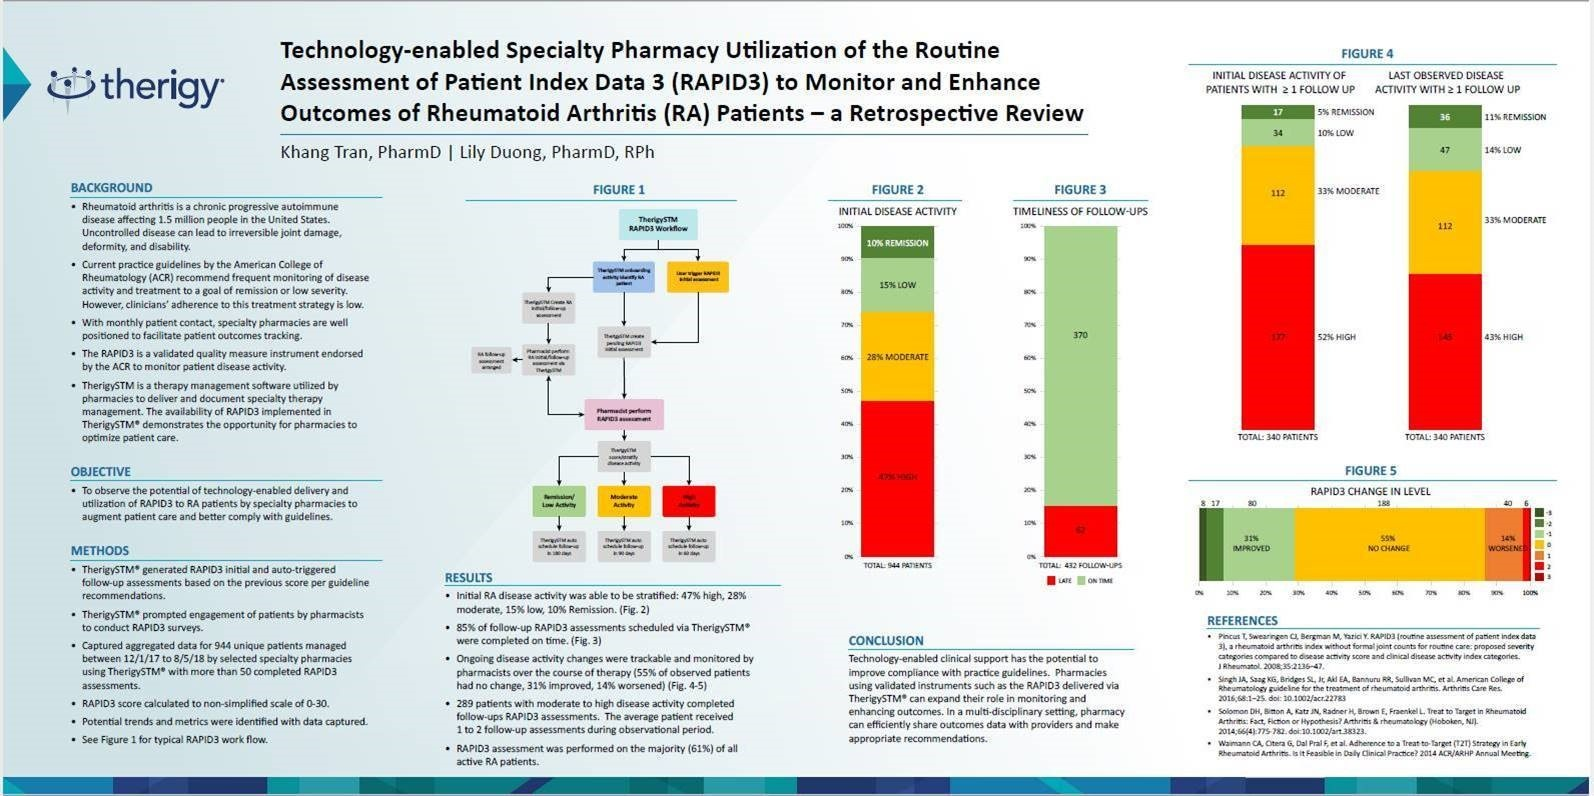 Rheumatoid Arthritis Specialty Patient Outcomes Poster Presentation  - NASP